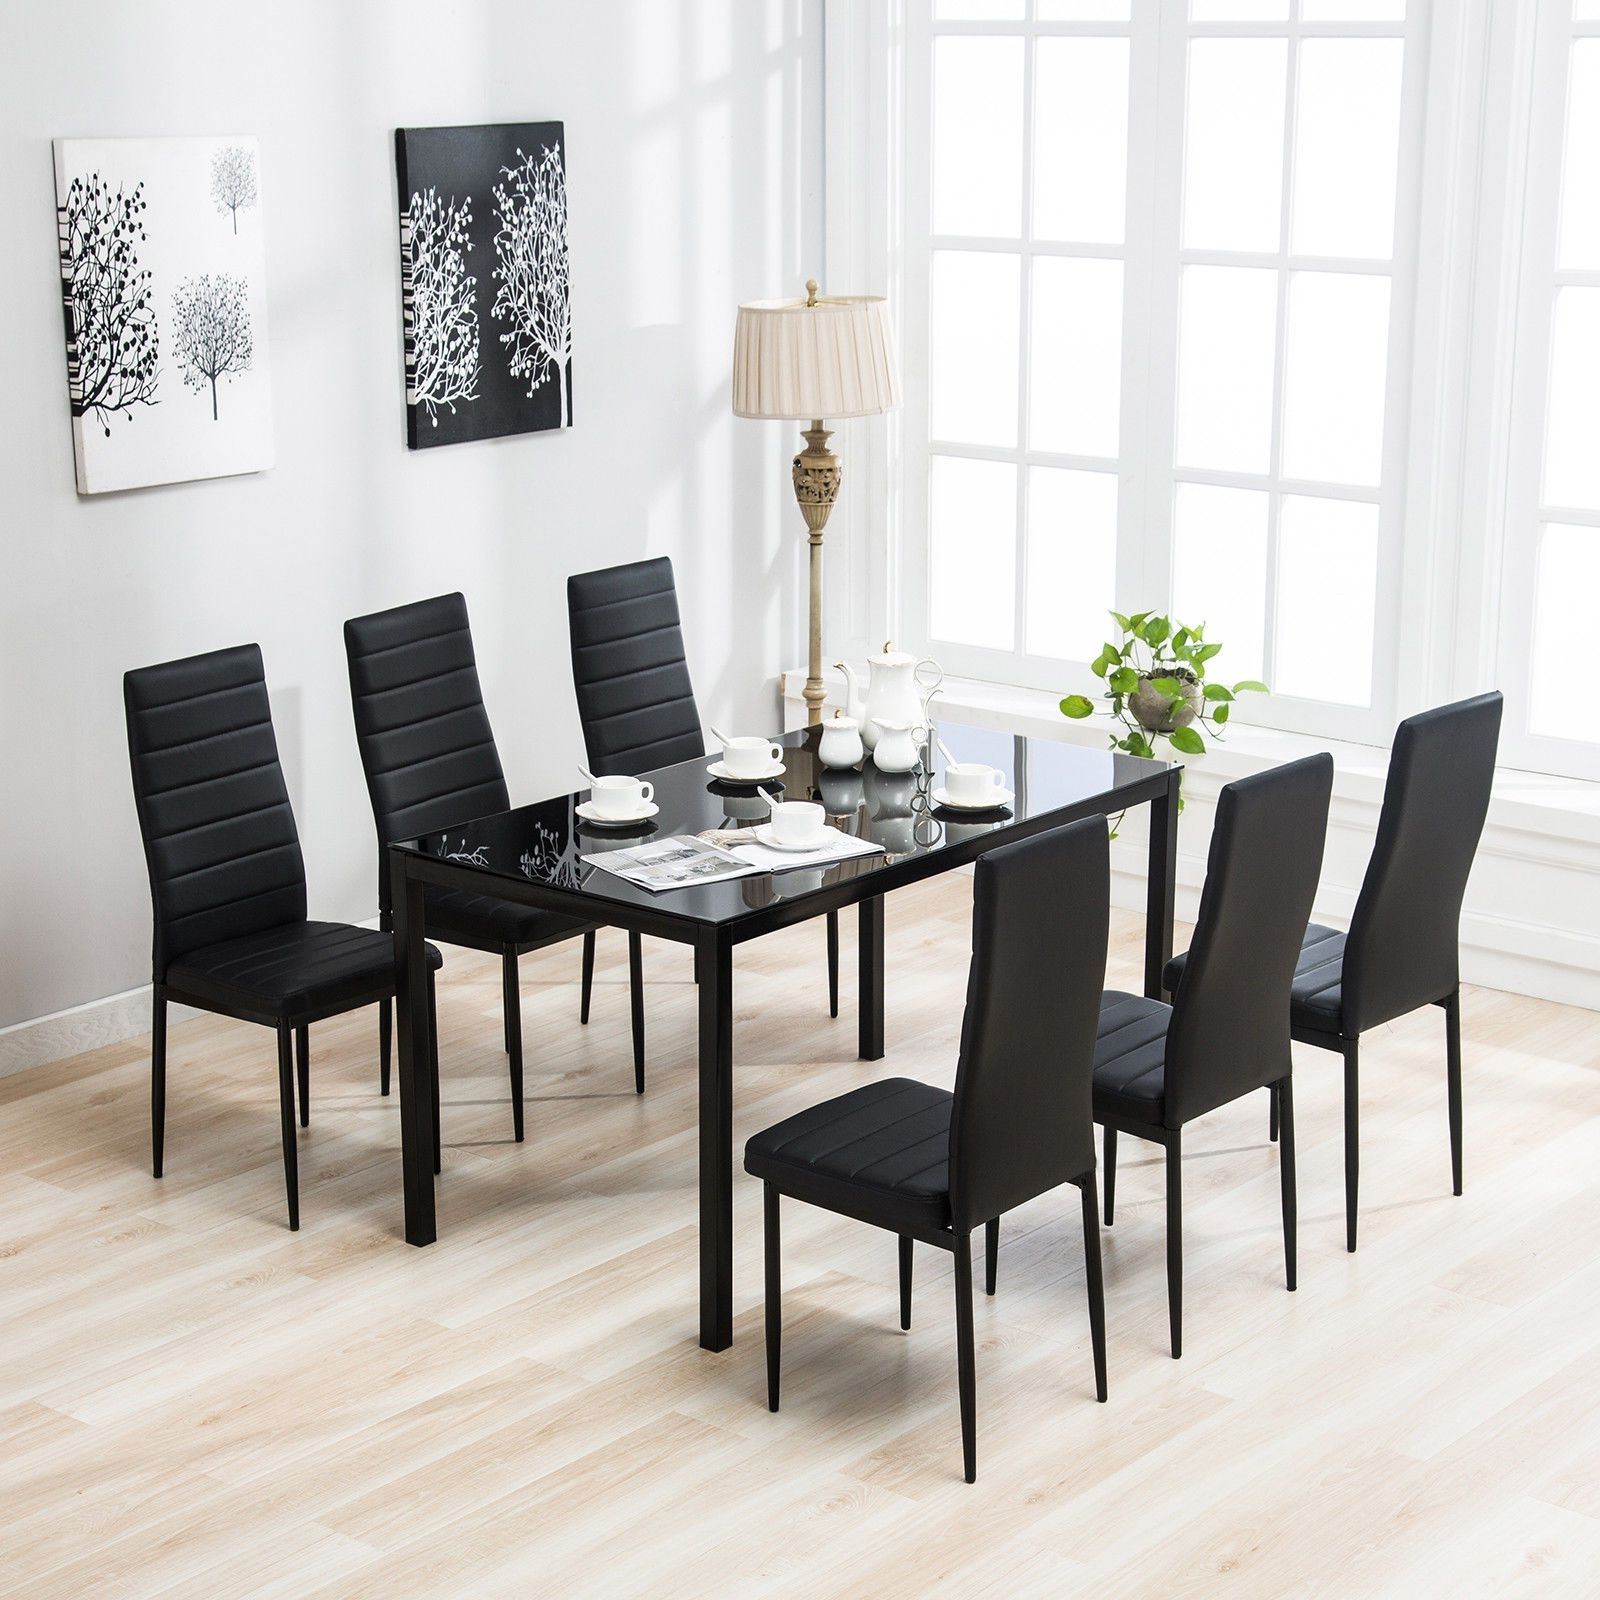 7 Piece Dining Table Set 6 Chairs Black Glass Metal Kitchen Room With Regard To Well Liked Round Black Glass Dining Tables And Chairs (View 25 of 25)